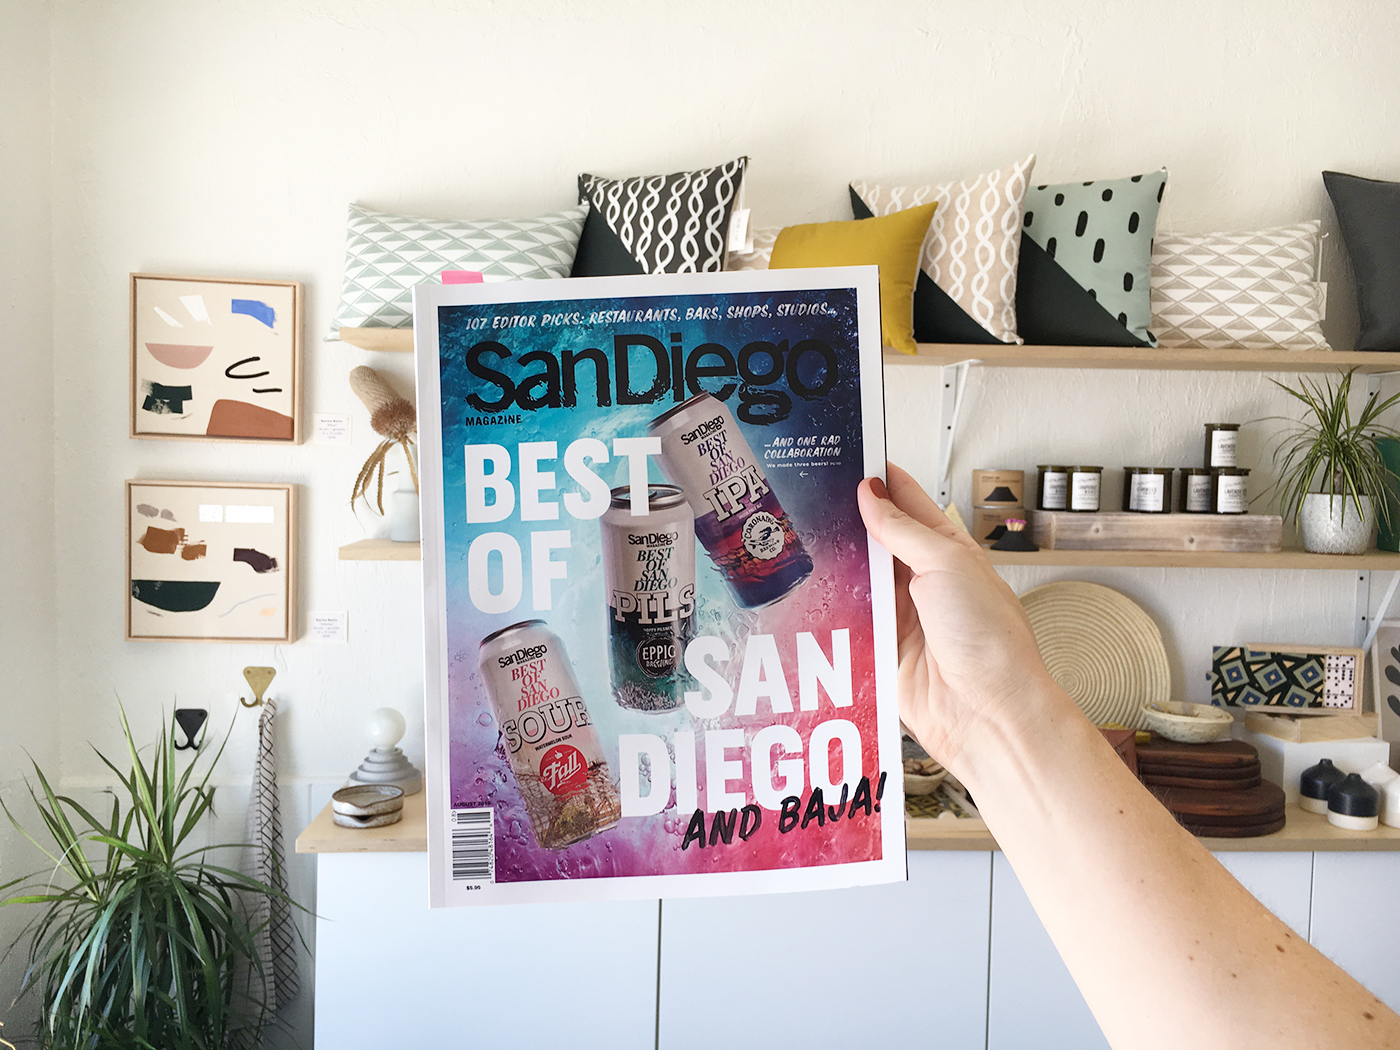 Best of San Diego - Cotton & Flax in San Diego Magazine